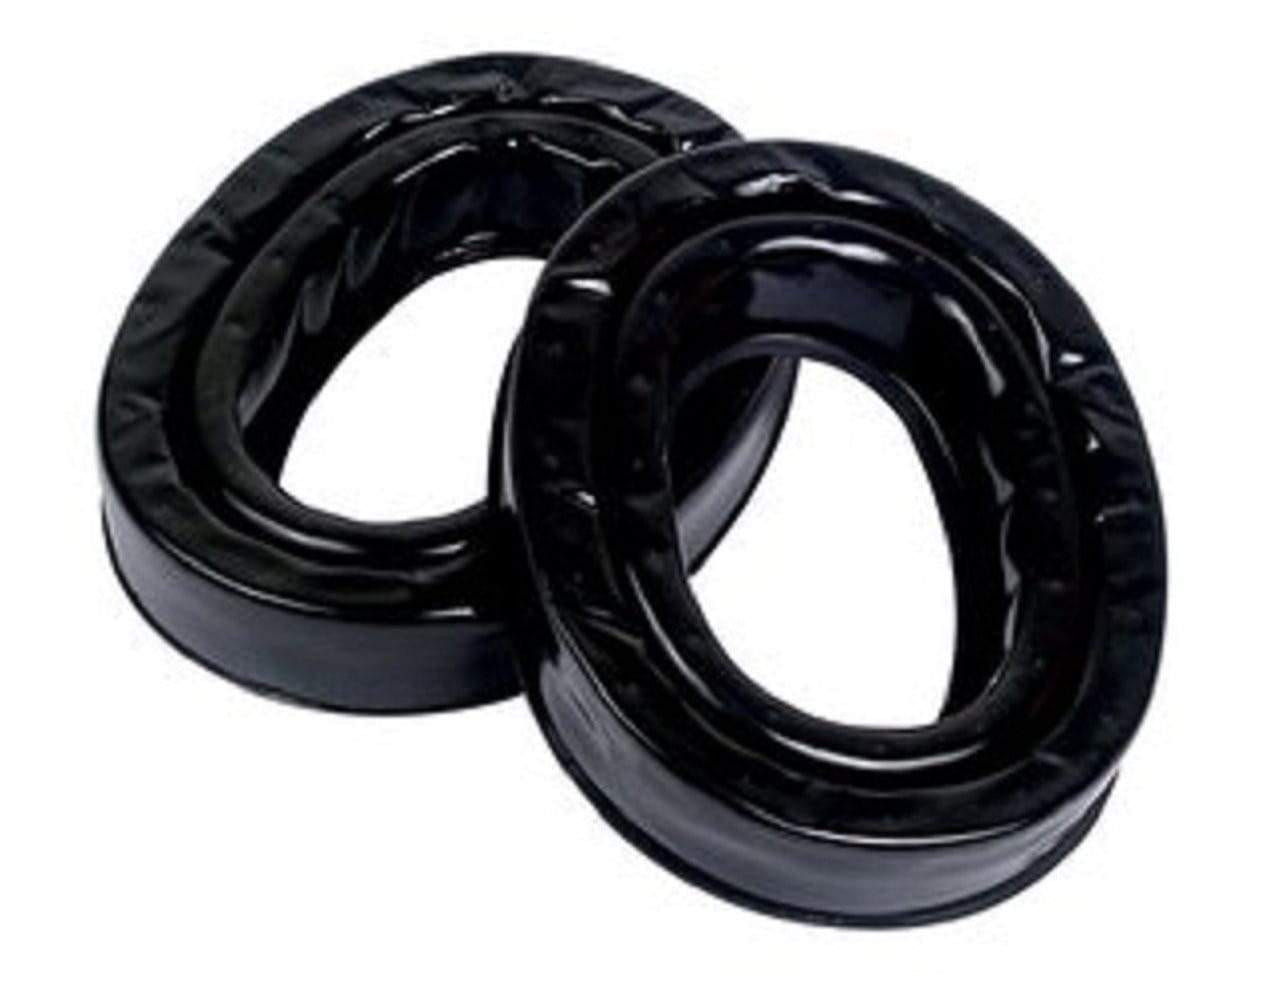 3M Peltor Camelback Gel Sealing Rings Black CHK-SHIELD | Outdoor Army - Tactical Gear Shop.